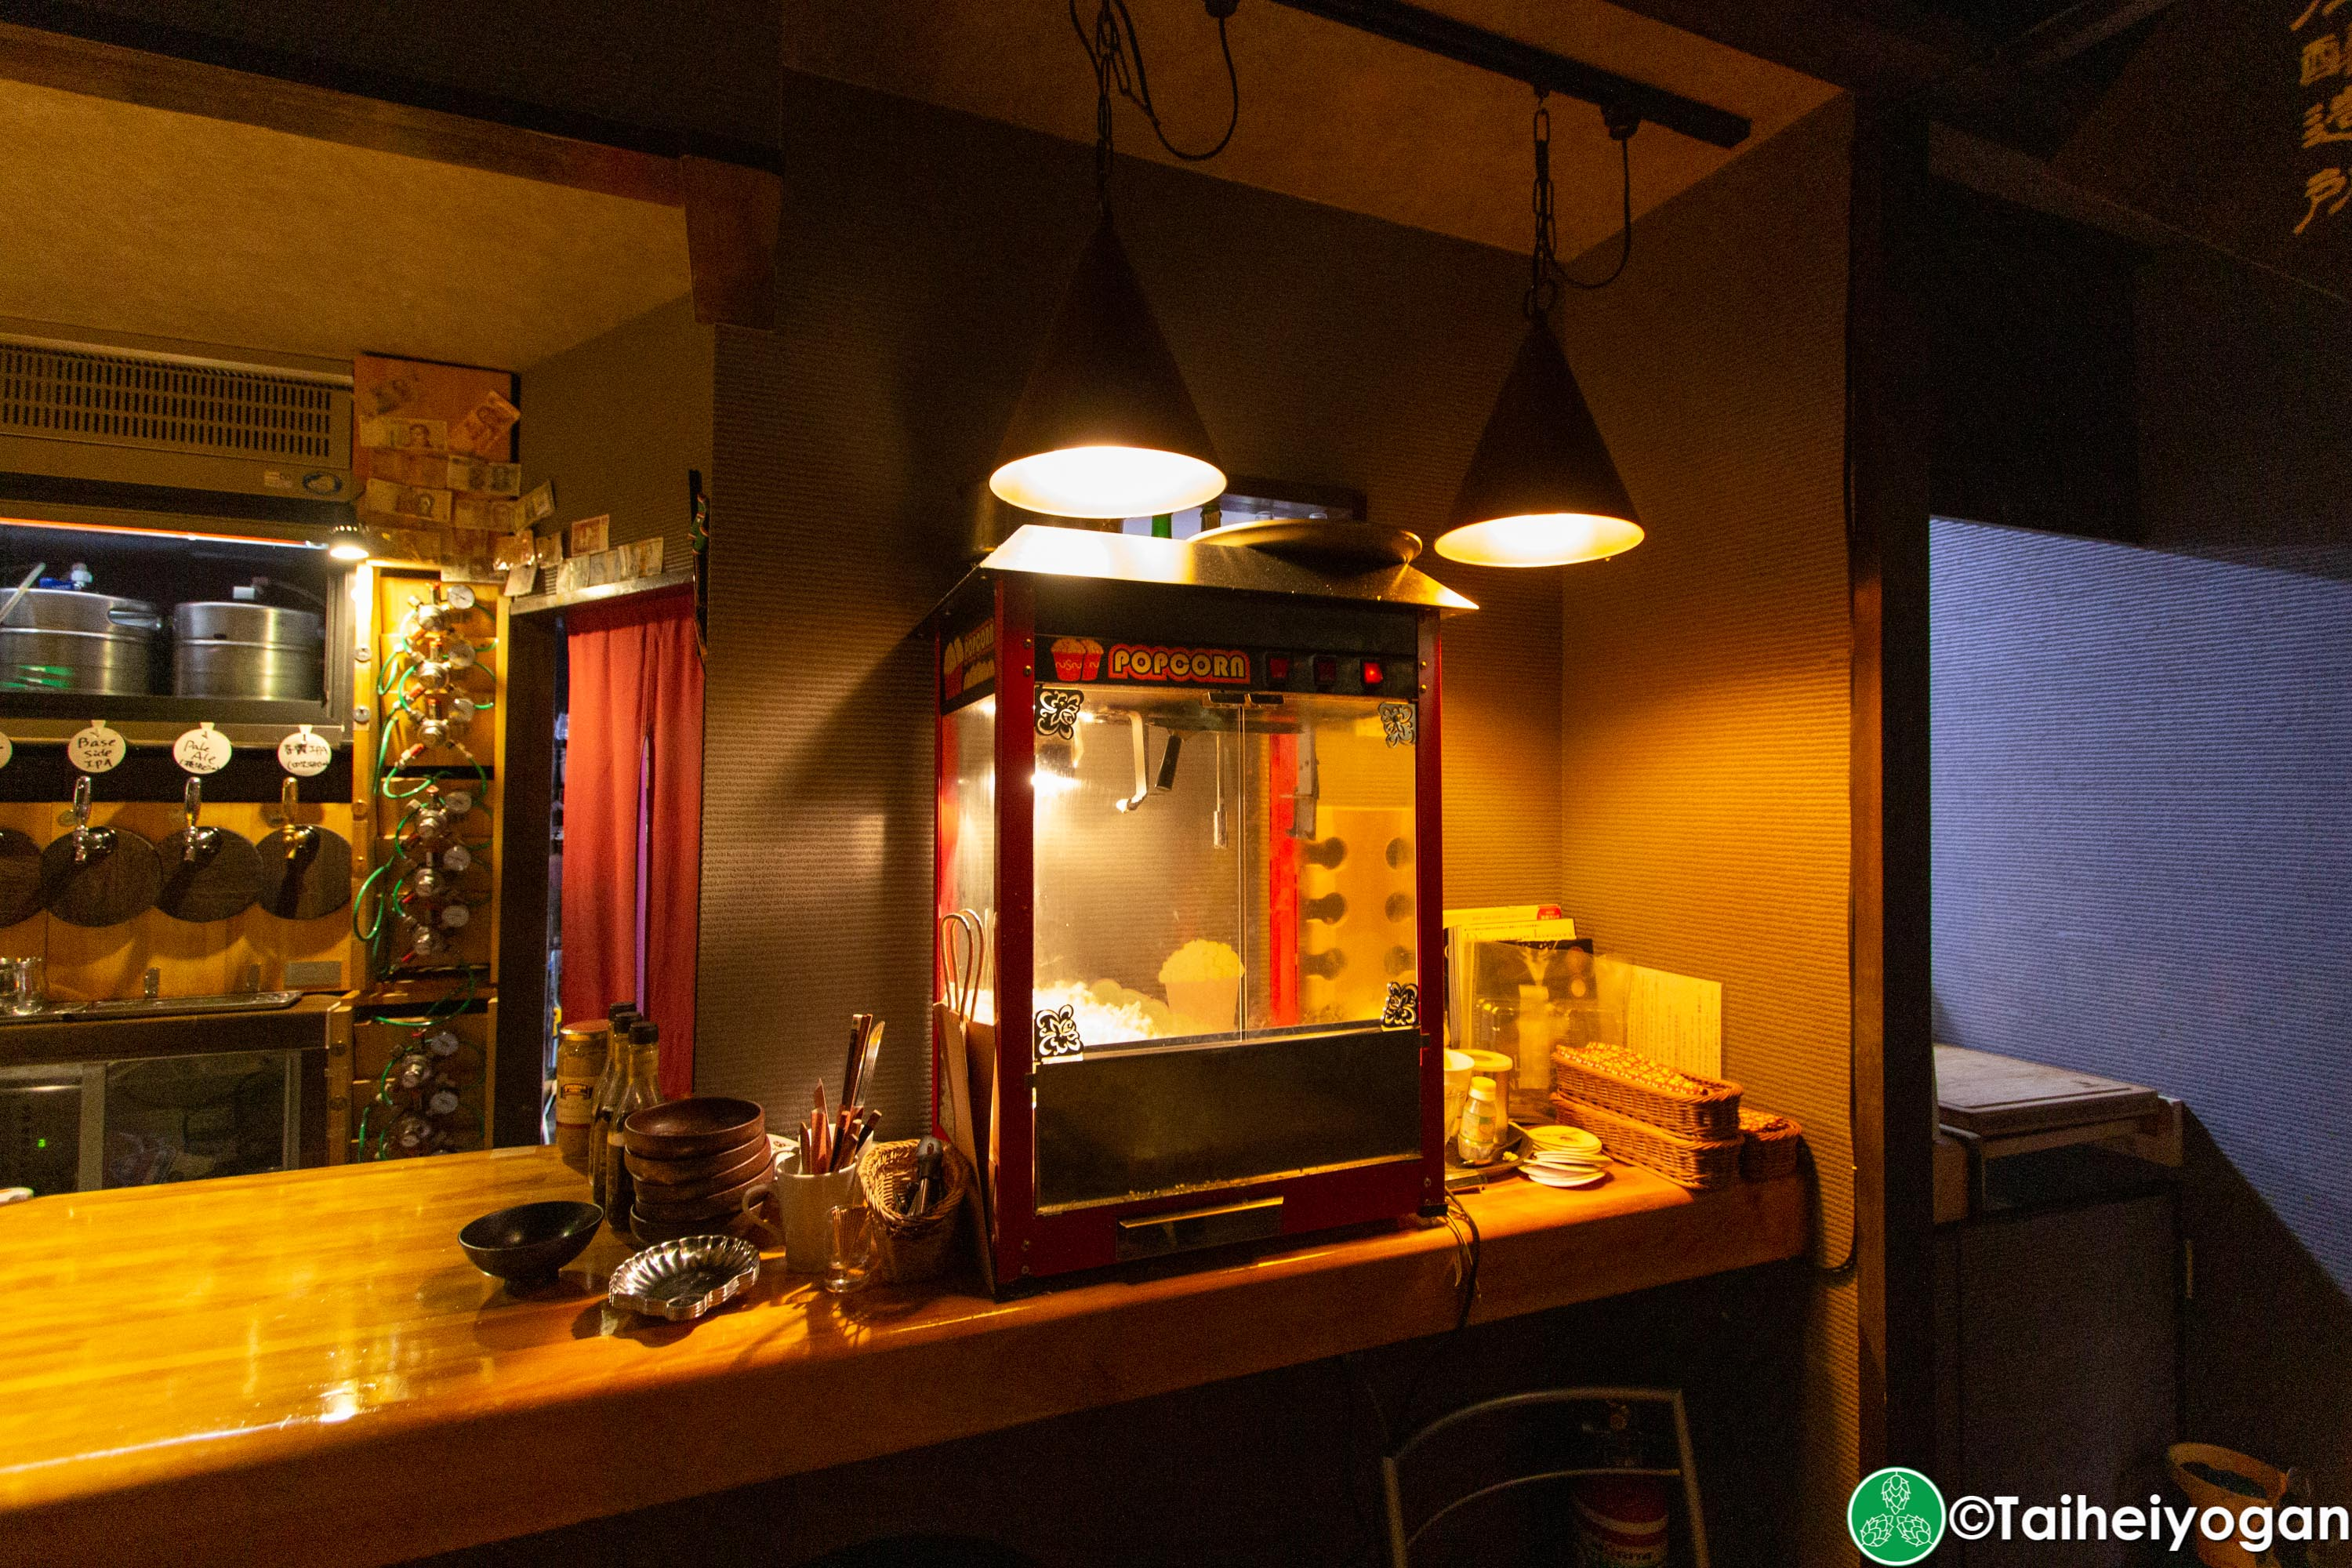 Brewin Bar Monde (主水) - Interior - Popcorn Machine